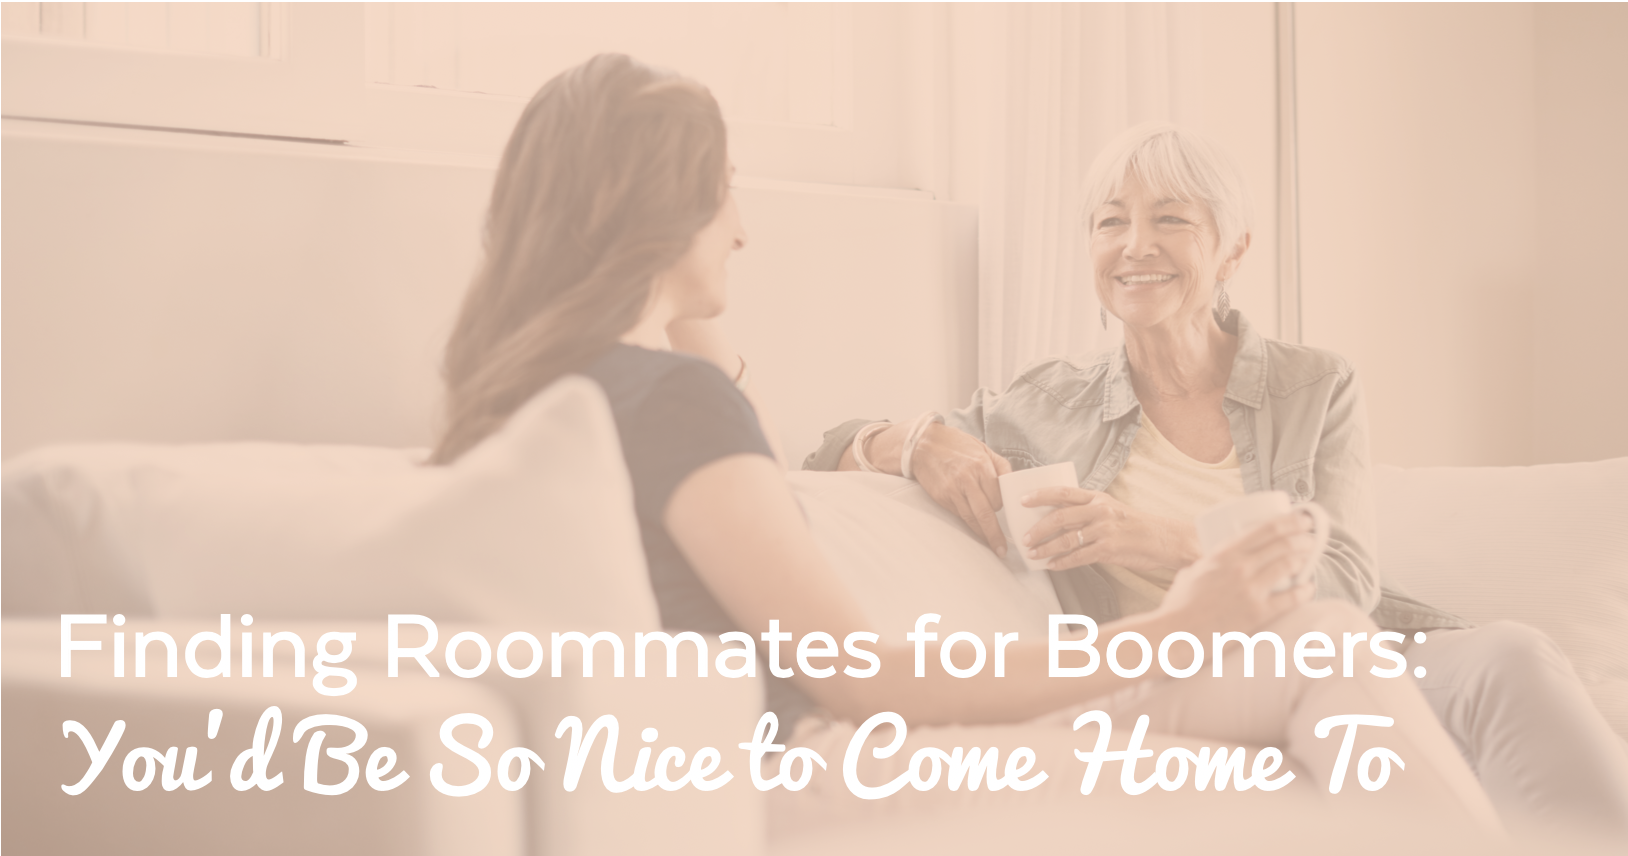 Finding Roommates for Boomers